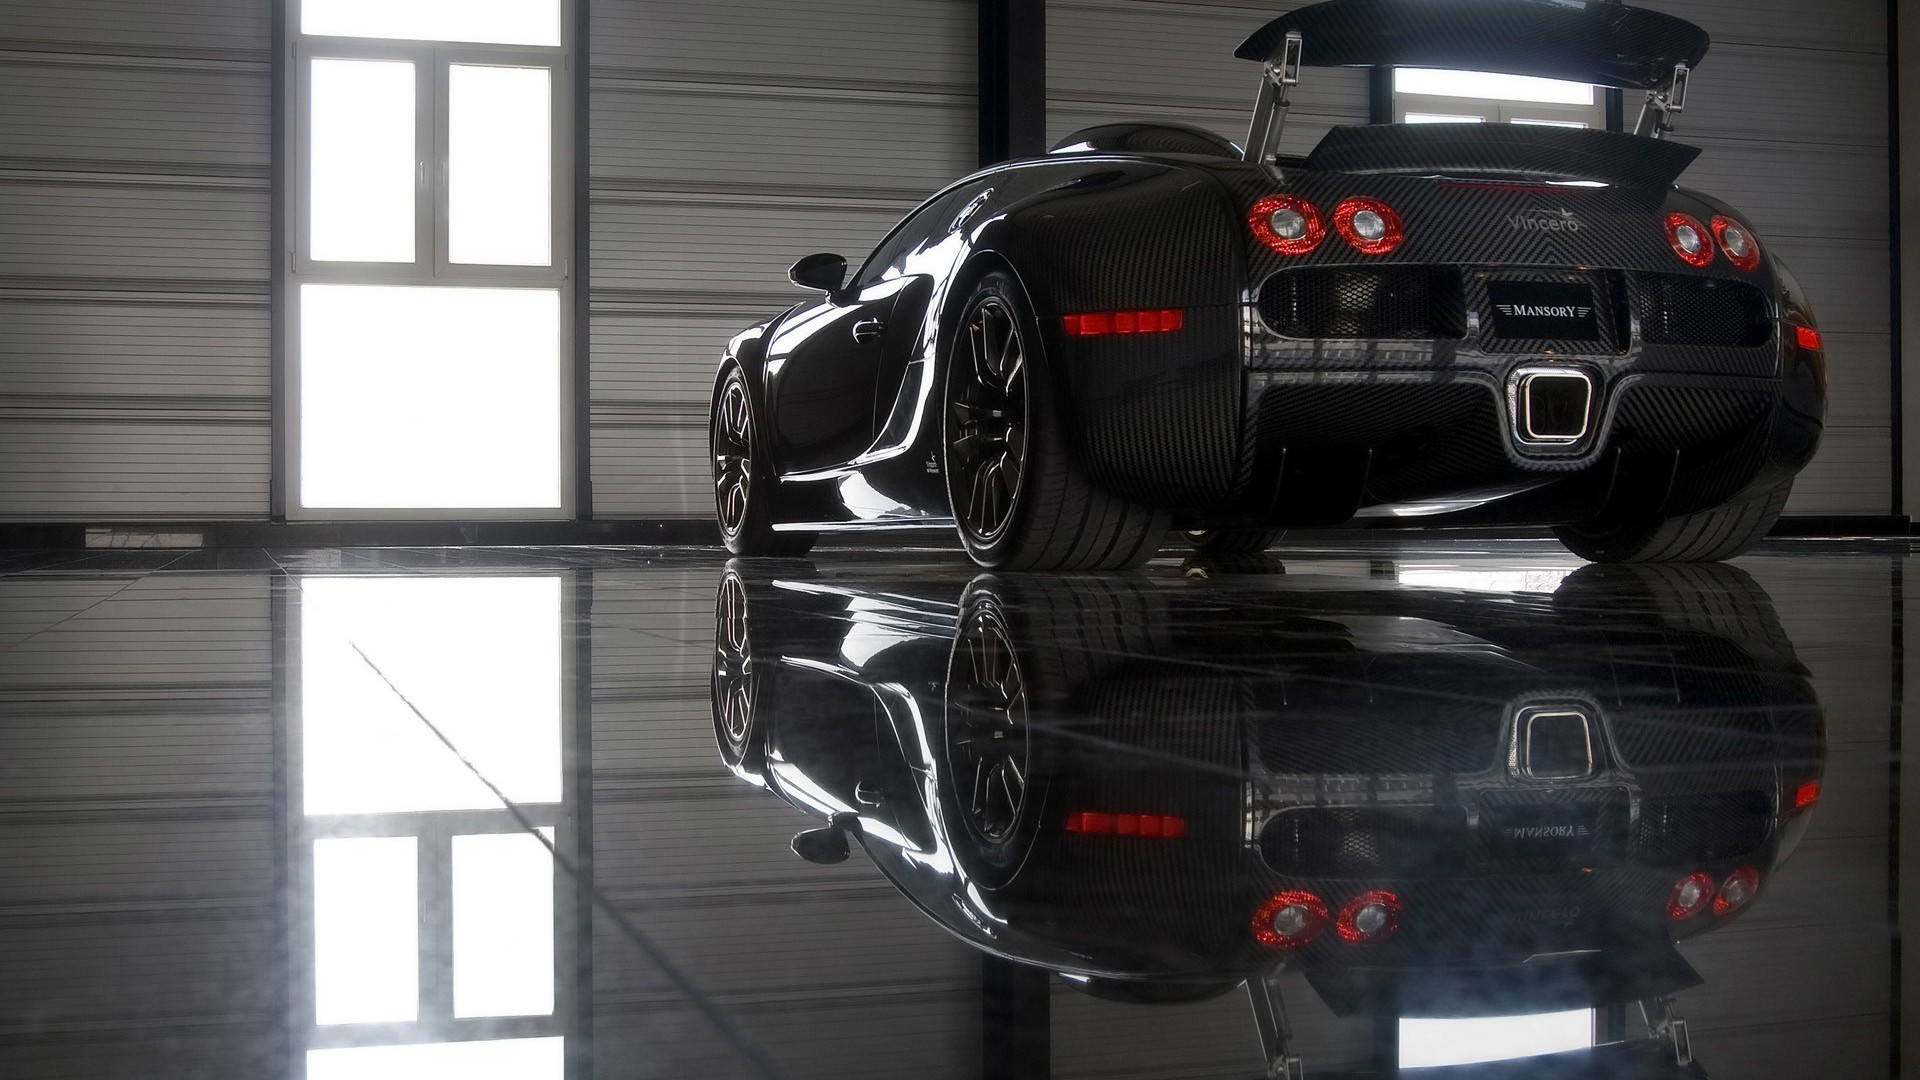 1920x1080 Bugatti Veyron Wallpaper Hd For Laptop 26